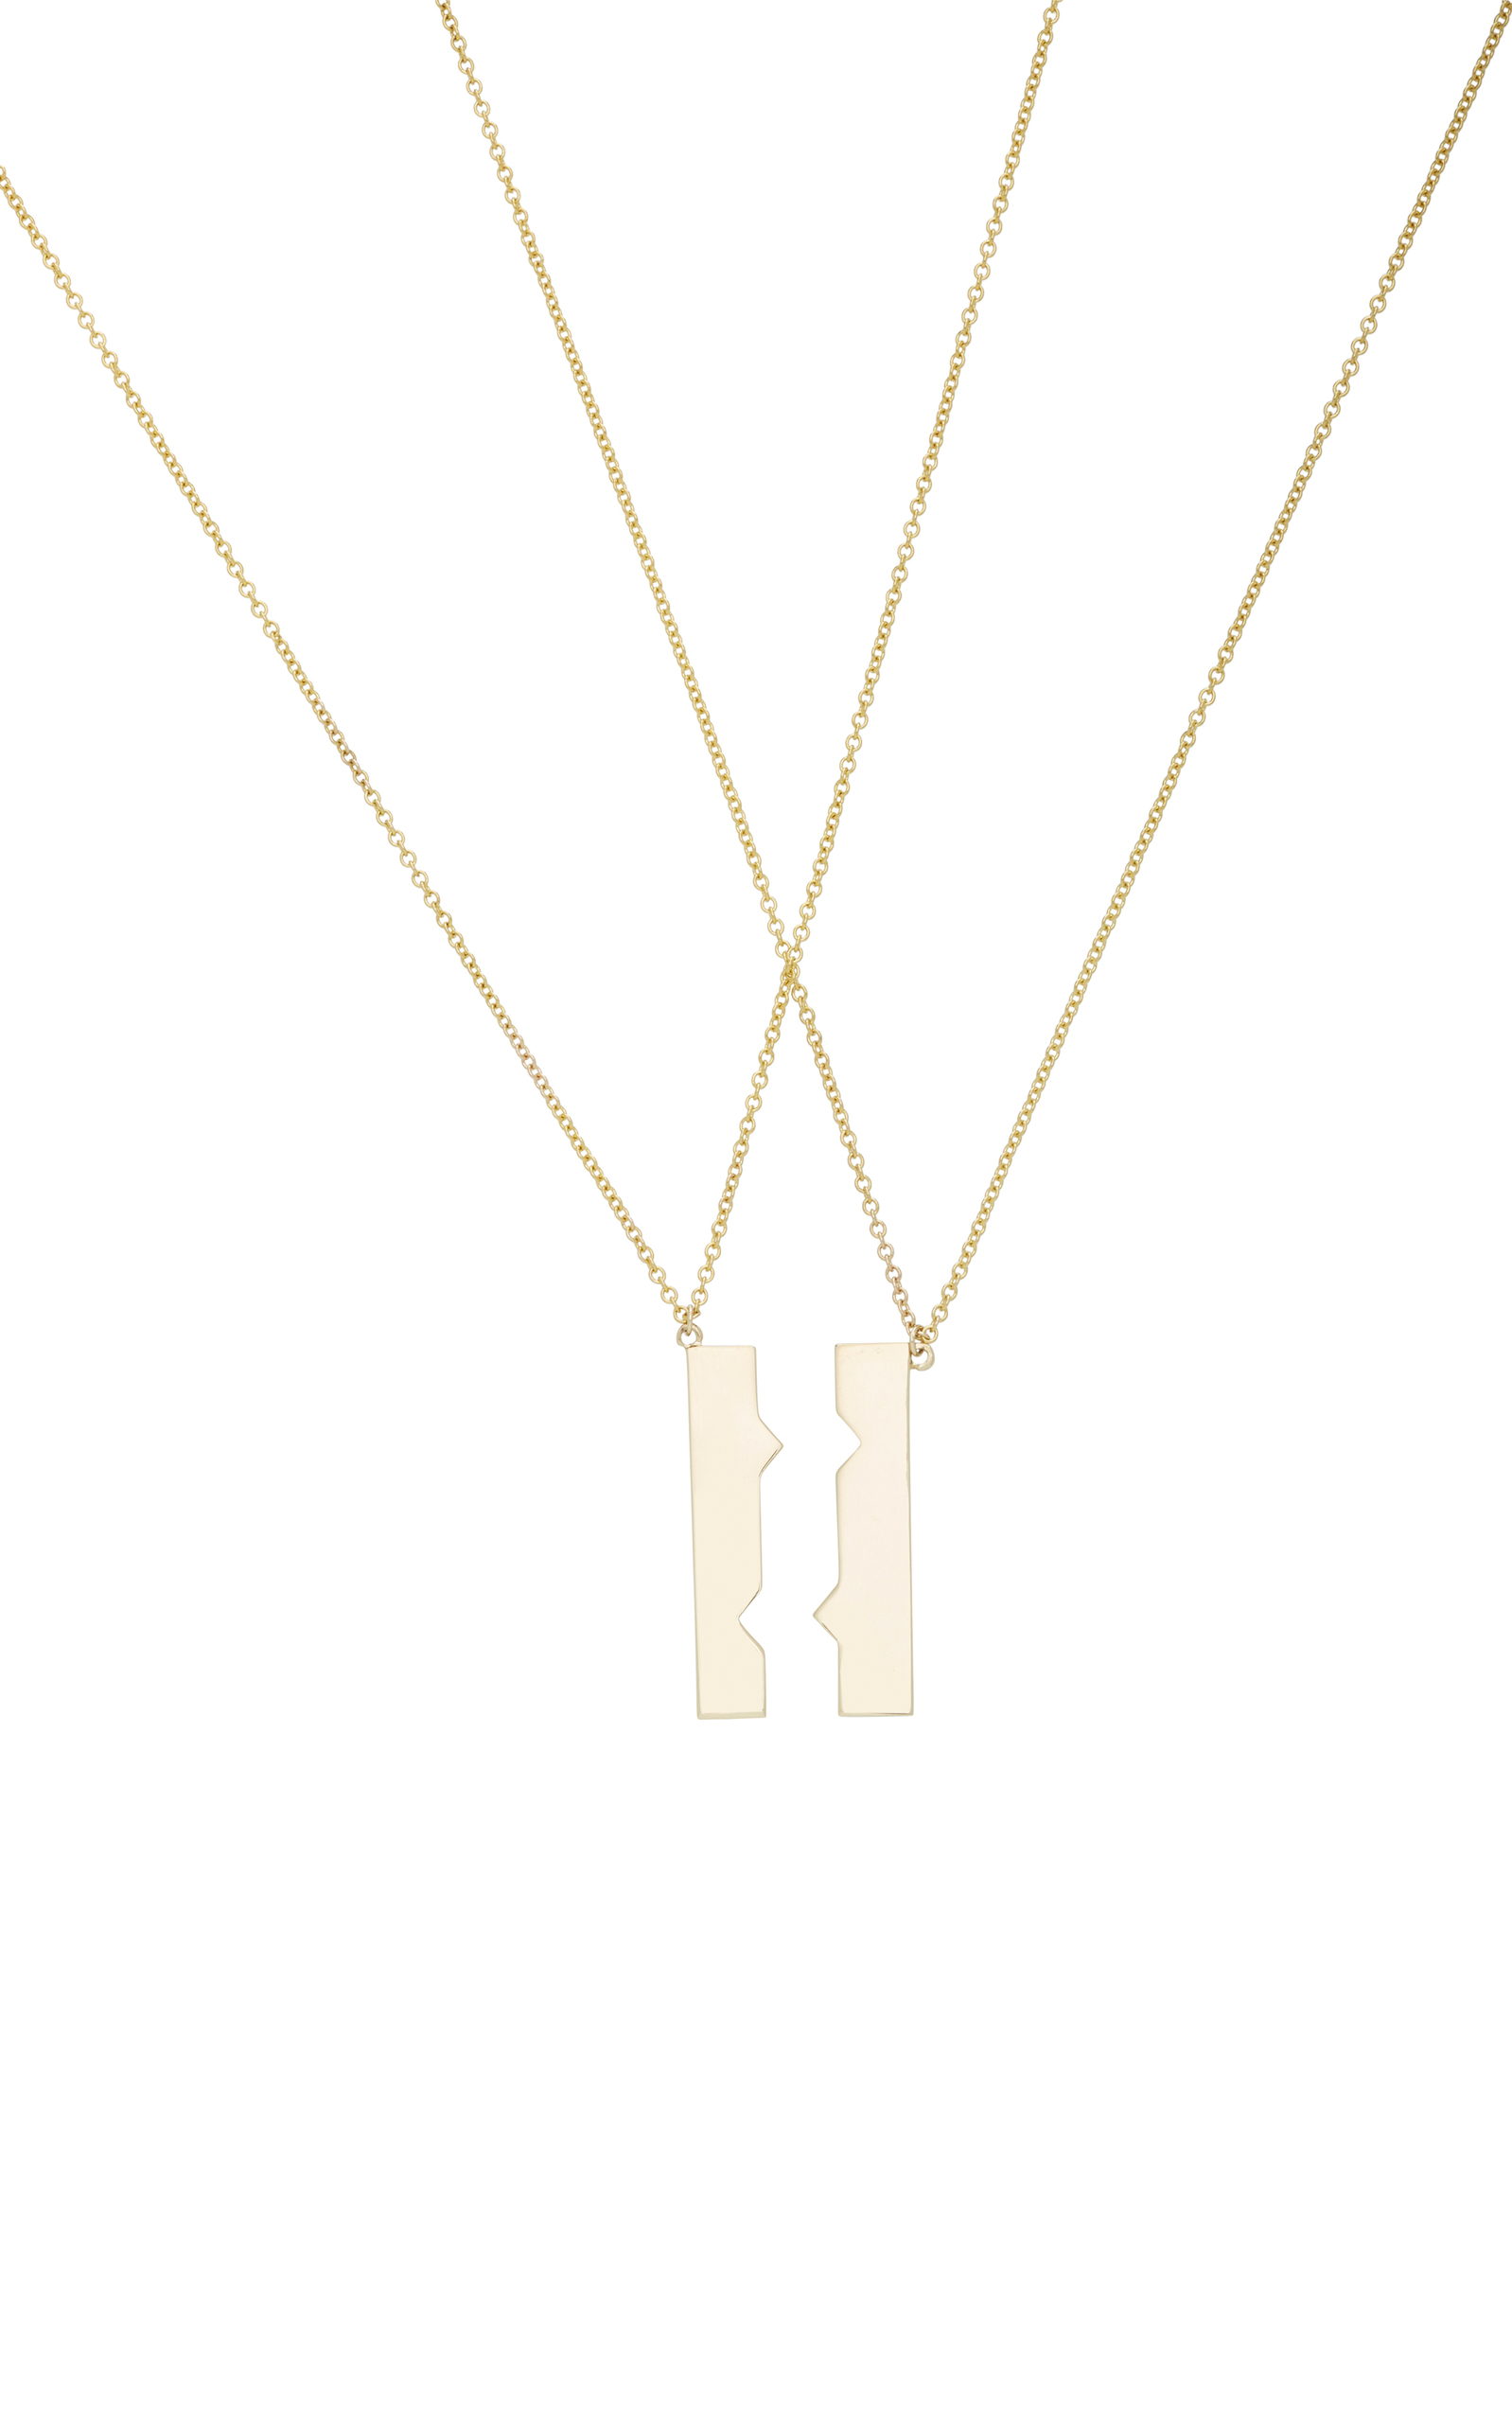 black march d and diamond necklace in gold chains jewellery white